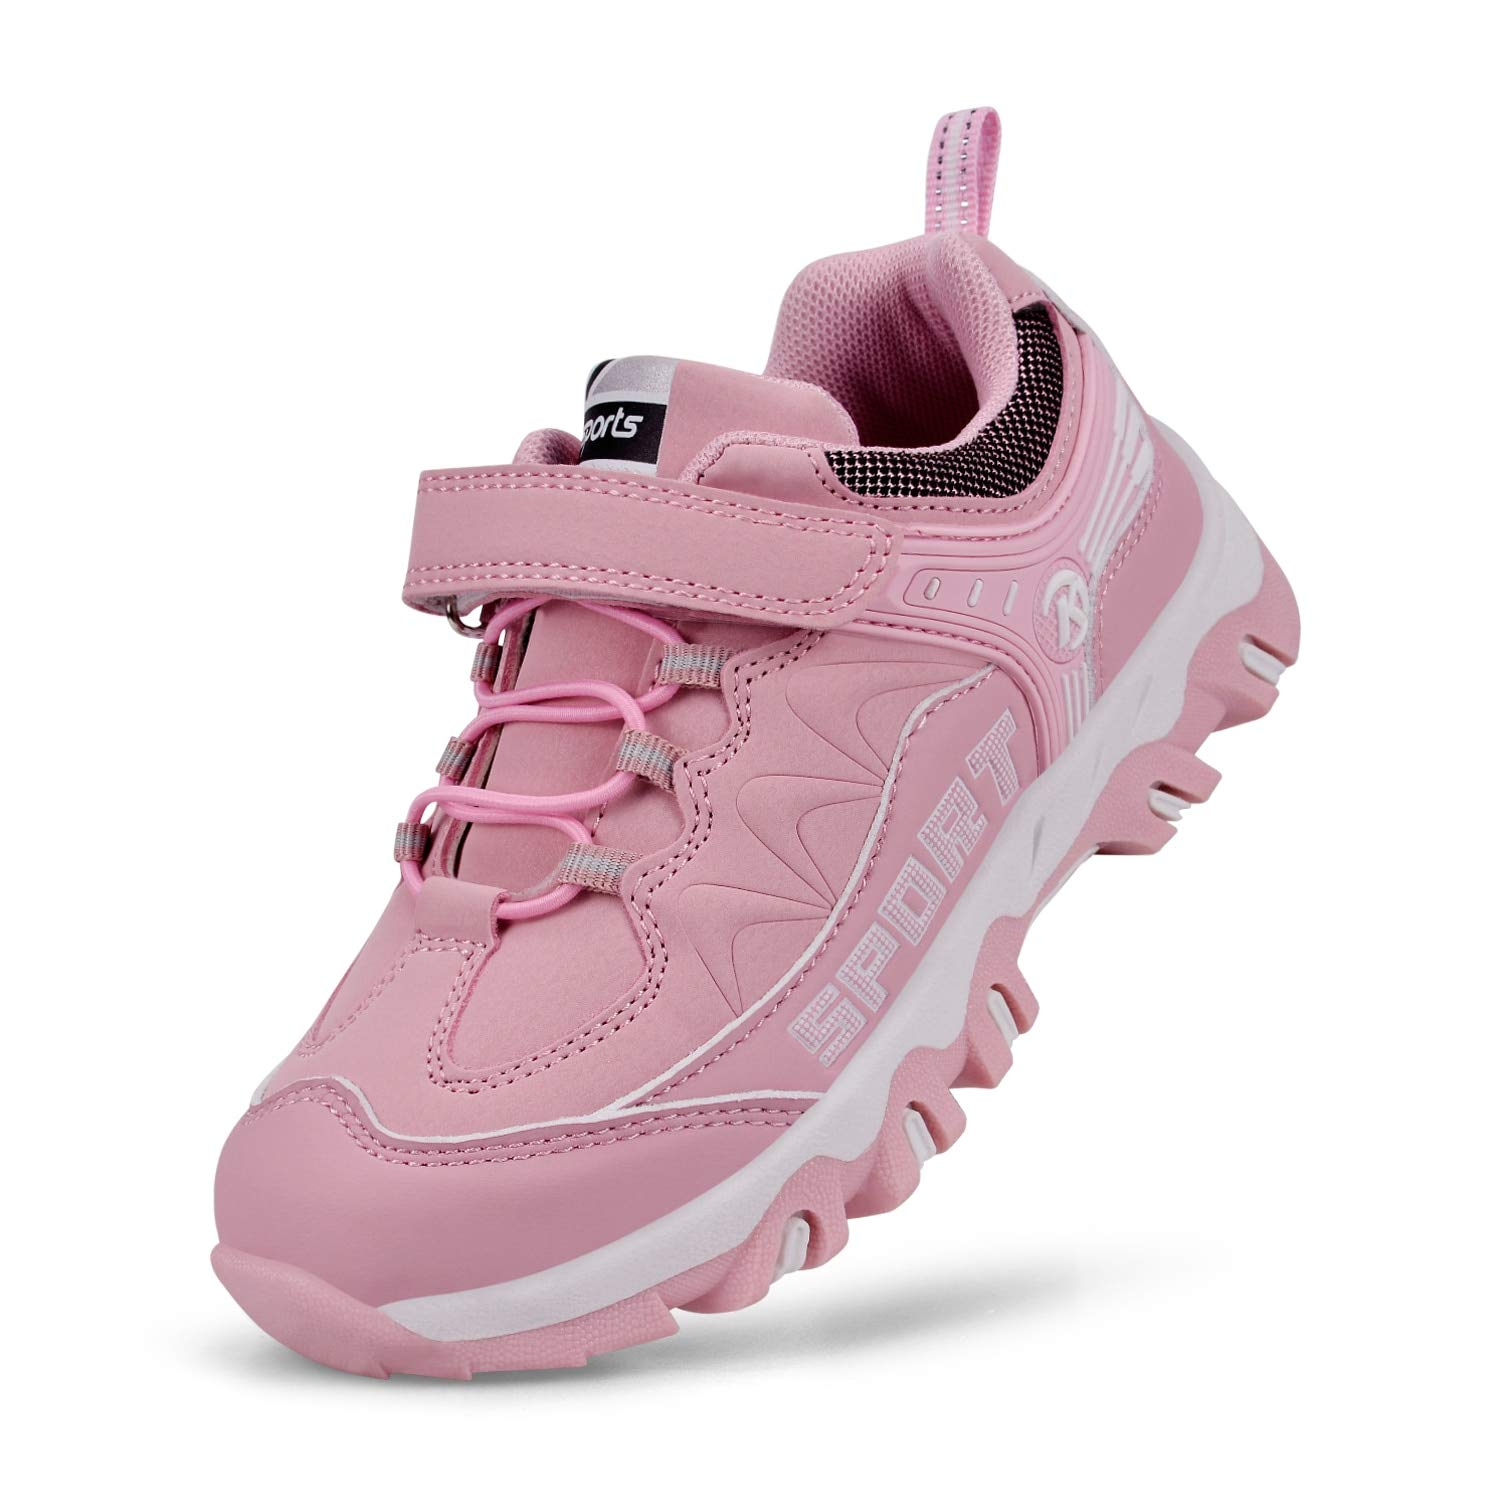 Simasoo Kids Comfortable Casual Sneakers Non-Slip Outdoor Breathable Shoes Pink 13 M US Little Kid